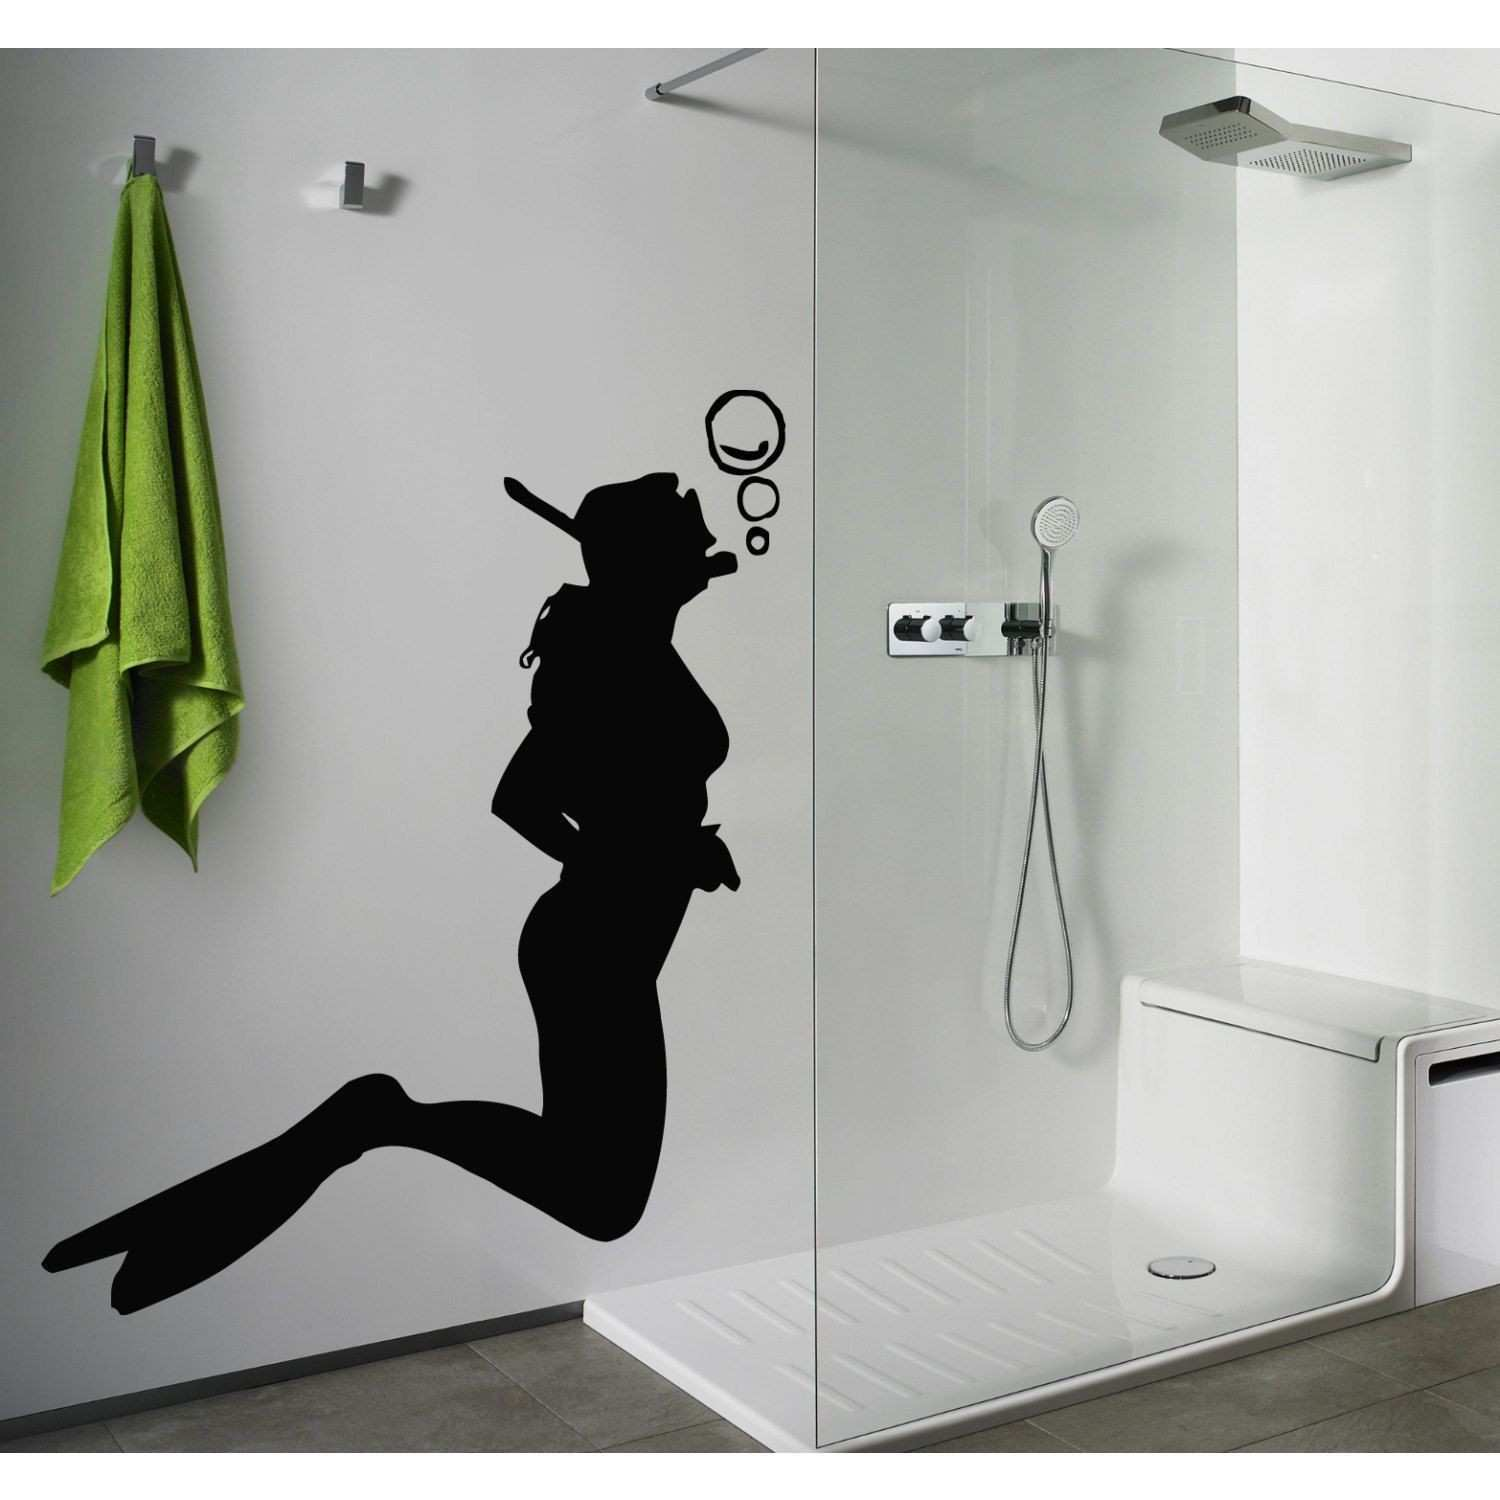 Skuba Diving Diver Bathroom Decor Black Sticker Vinyl Wall Art